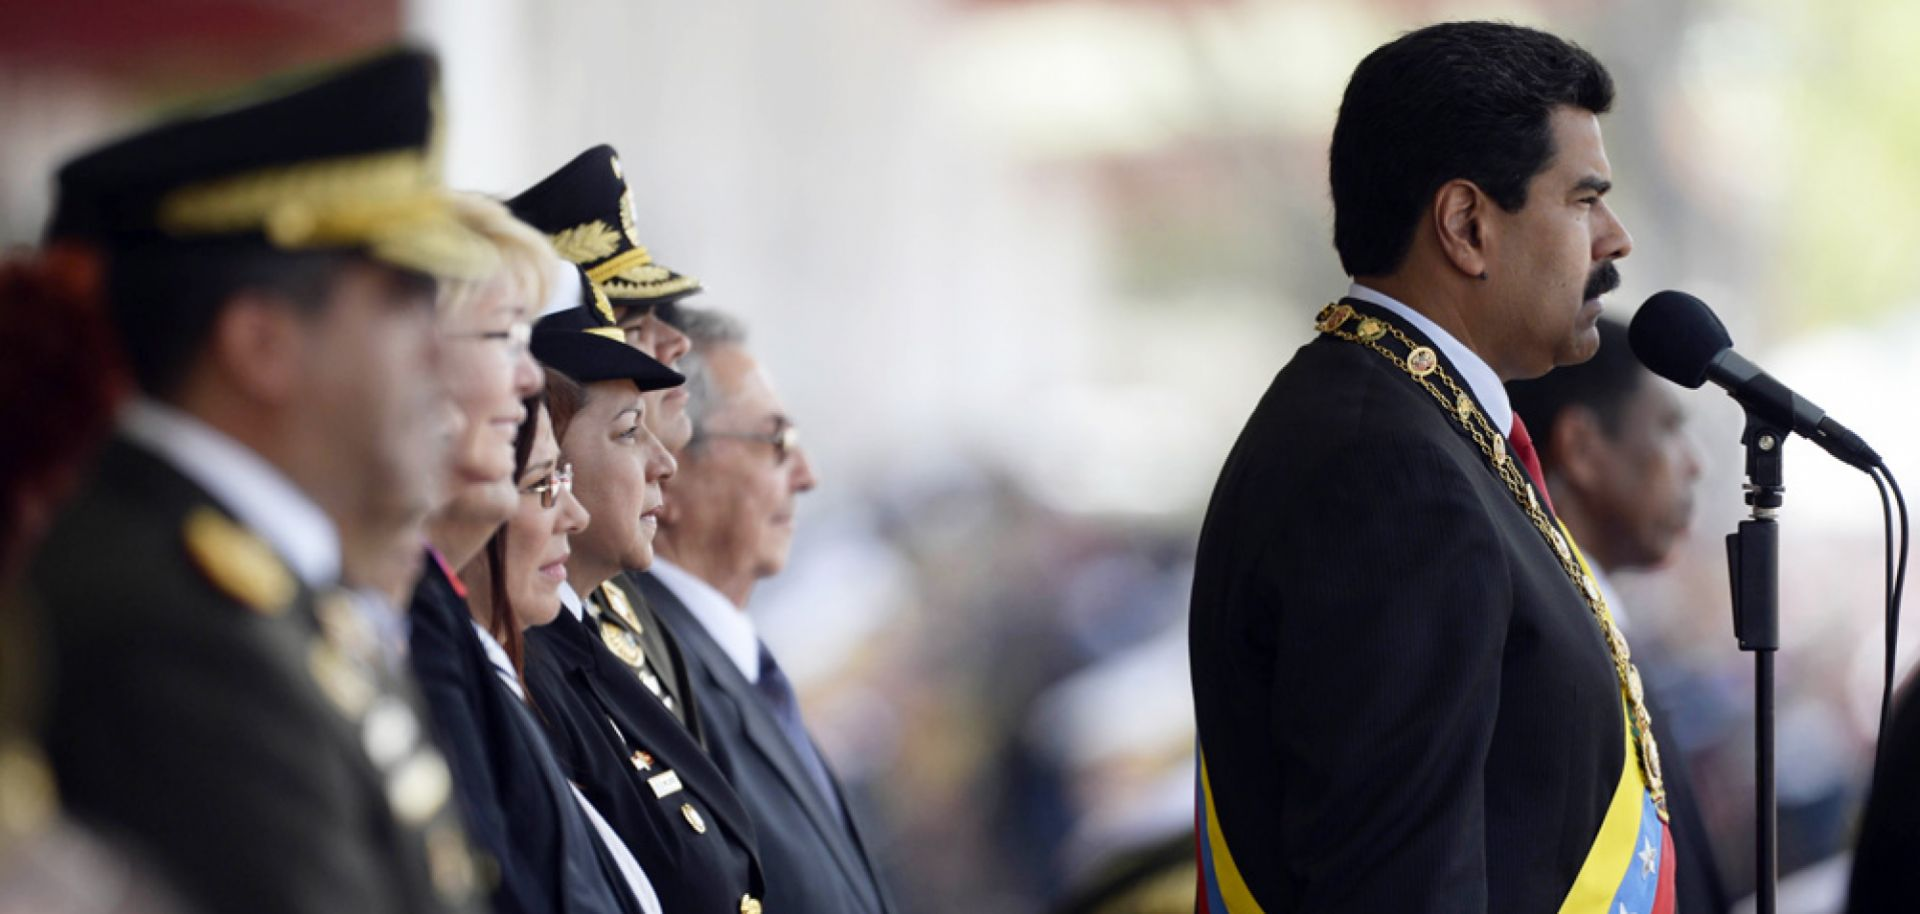 In Venezuela, the Military's Influence in Government Could Block Reforms